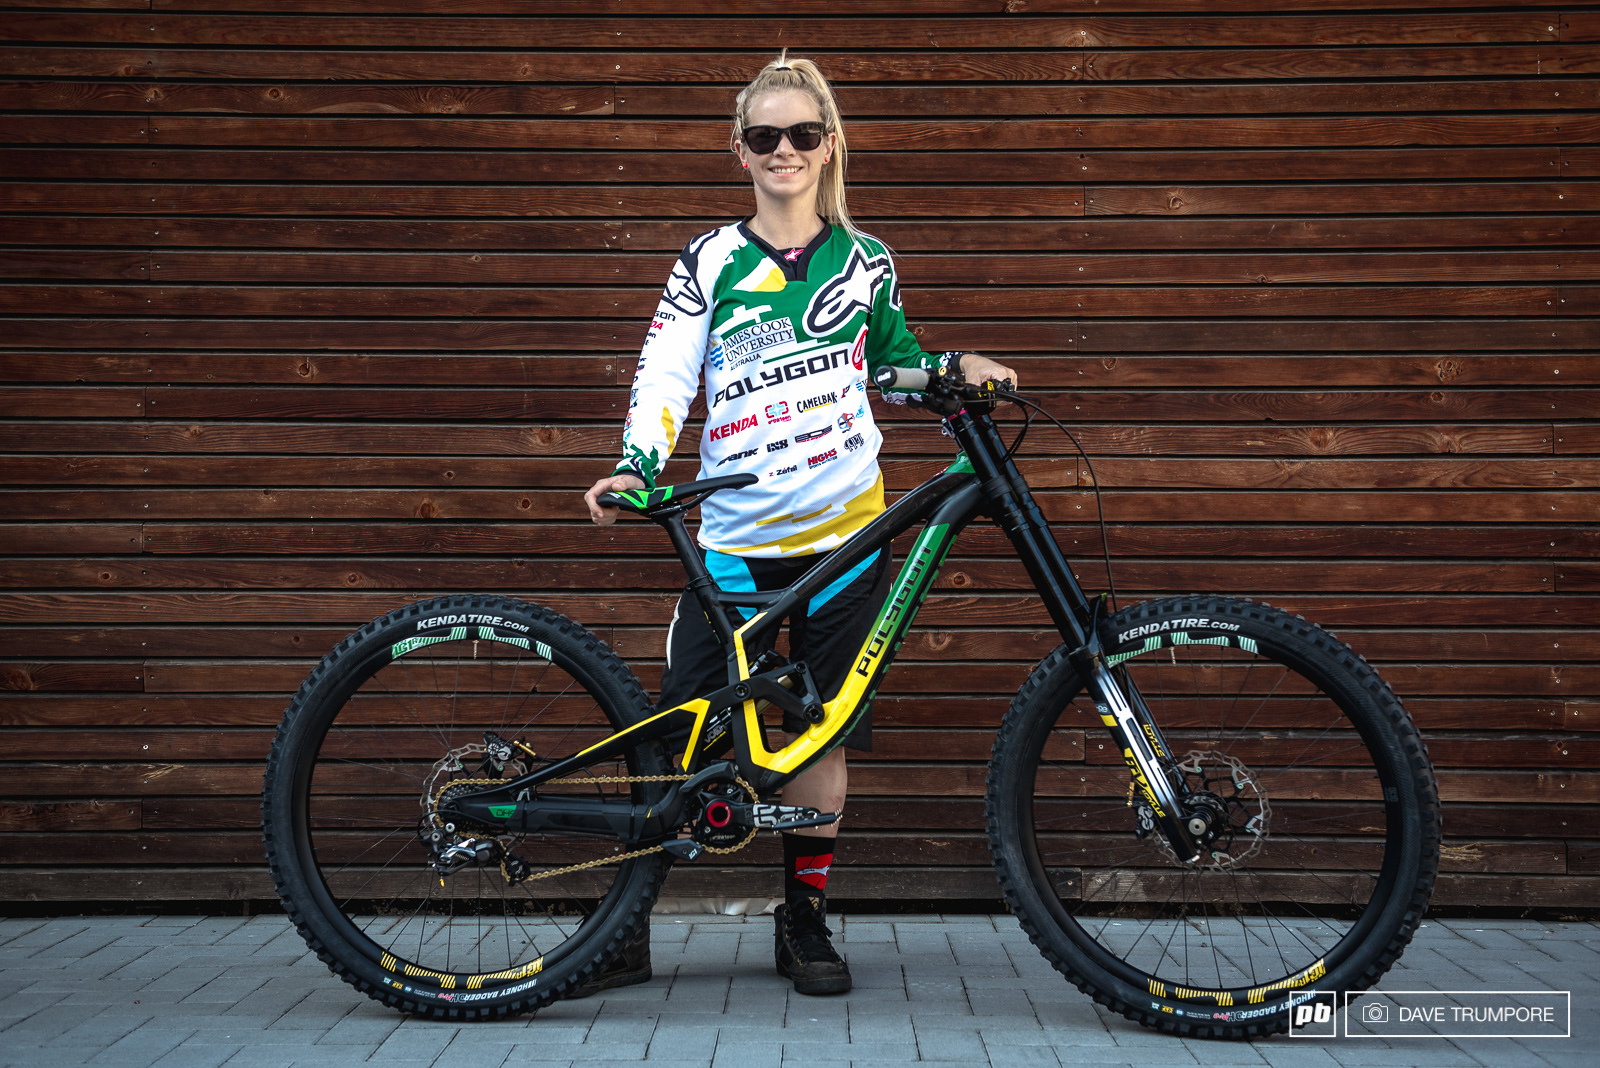 Tracey Hannah and her custom Polygon a fresh new World Champs kit from Alpinestars.